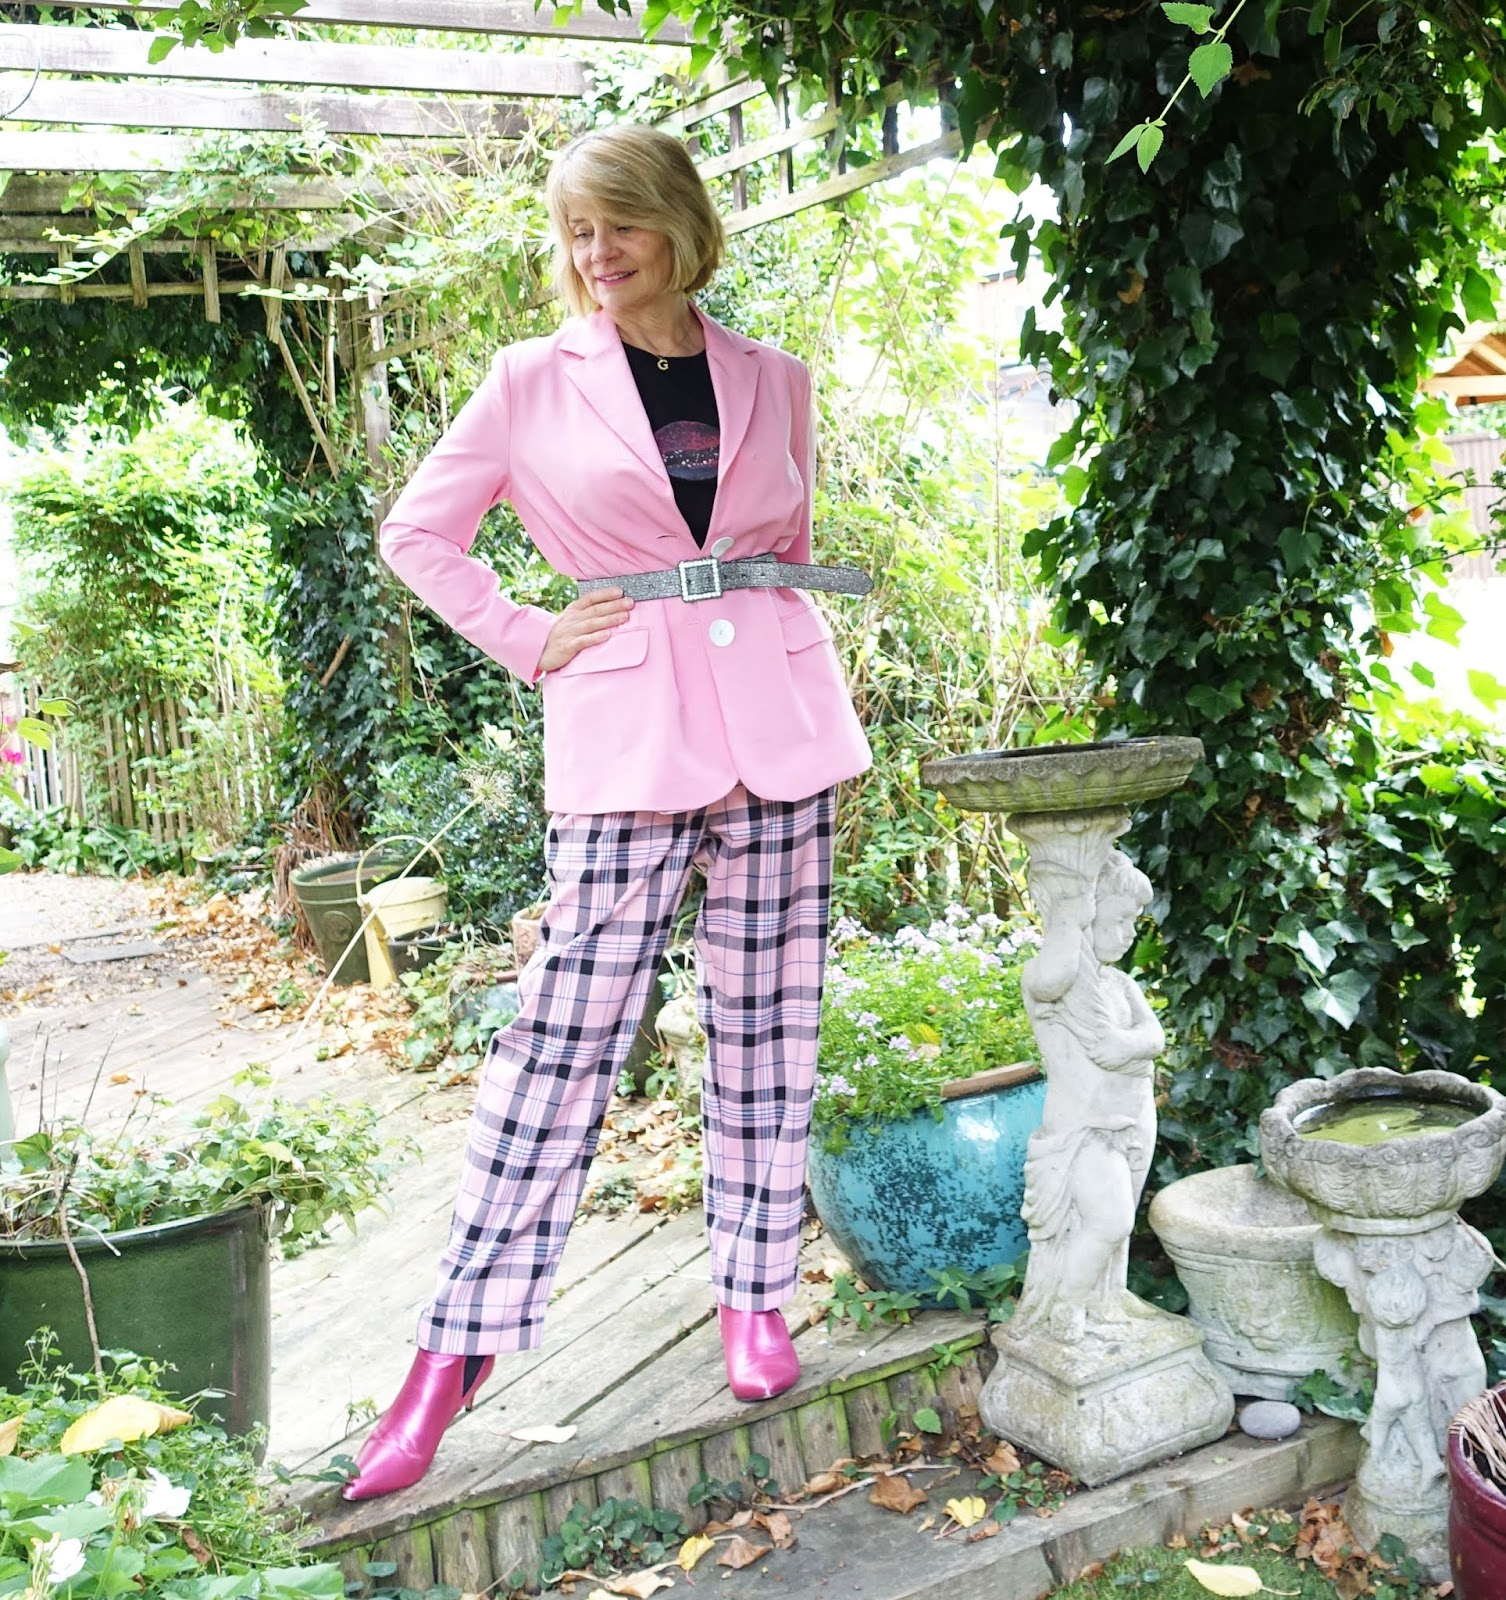 Over-50s blogger Gail Hanlon from Is This Mutton in pink and black with check trousers, belted jacket and bright pink ankle boots for the Check Me Out Challenge